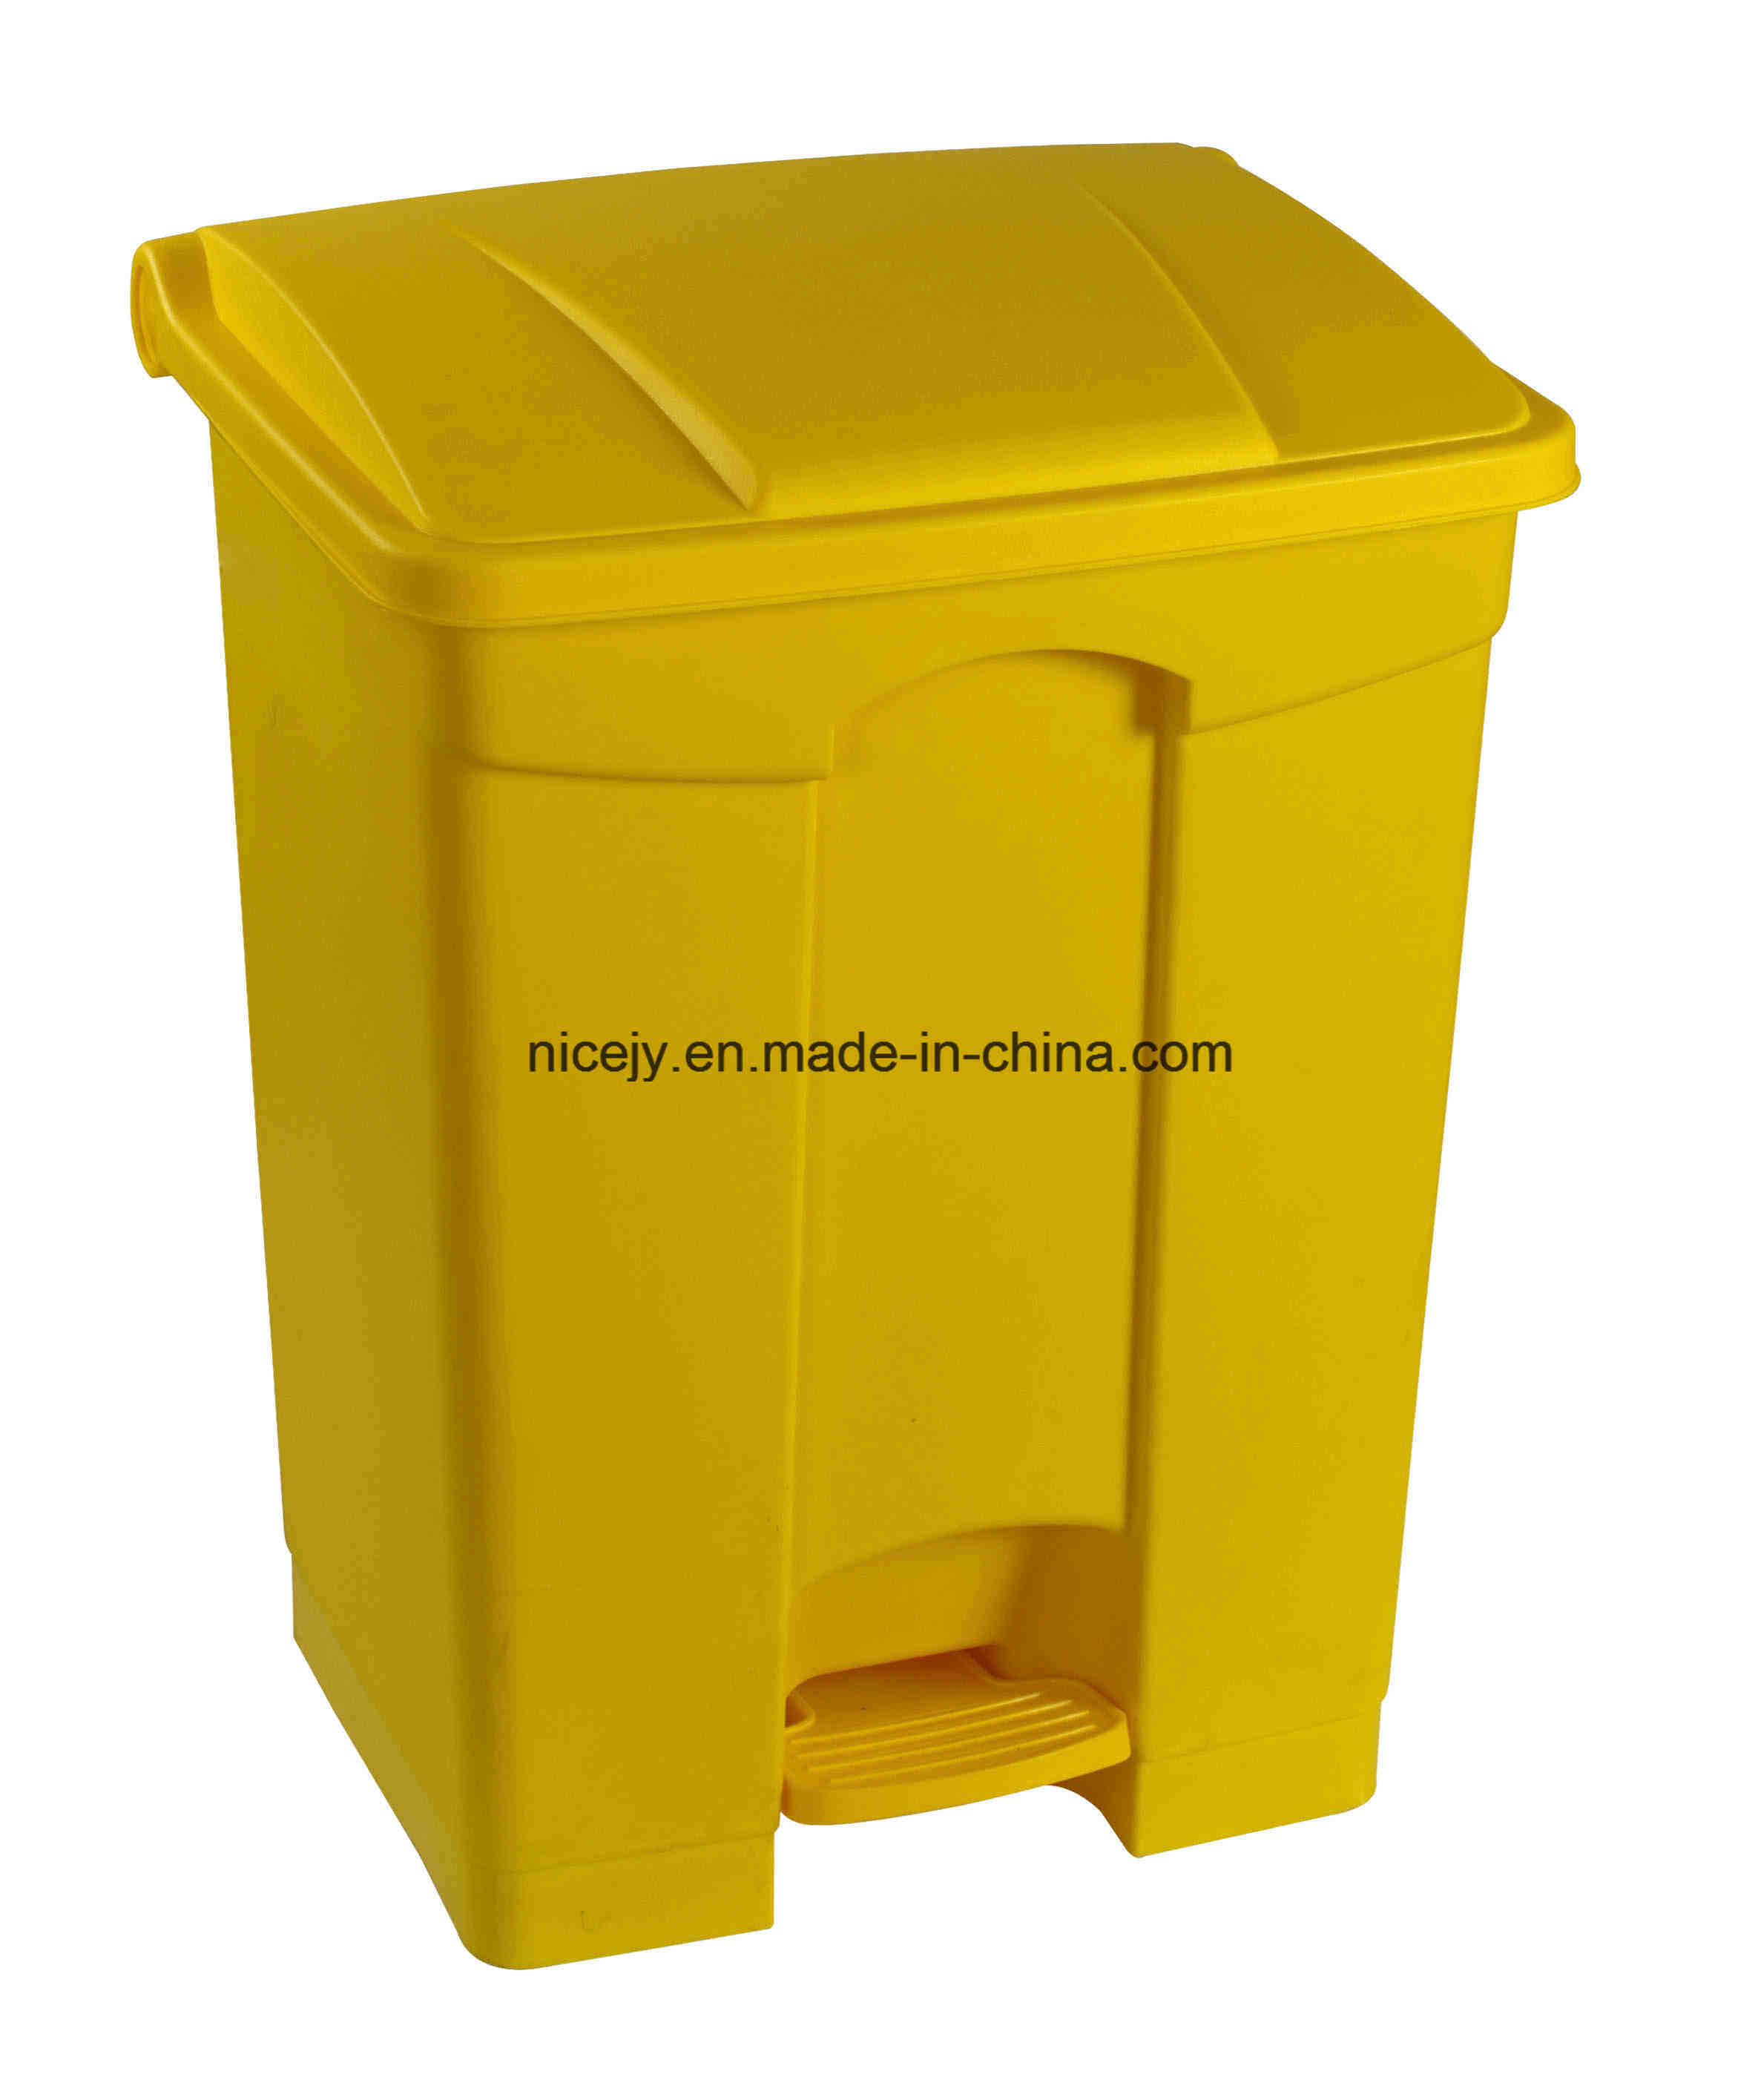 Colorful Garbage Cans Hot Item 87 L Plastic And Colorful Outdoor Waste Bin Compost Bin Dustbin Garbage Can Trash Can